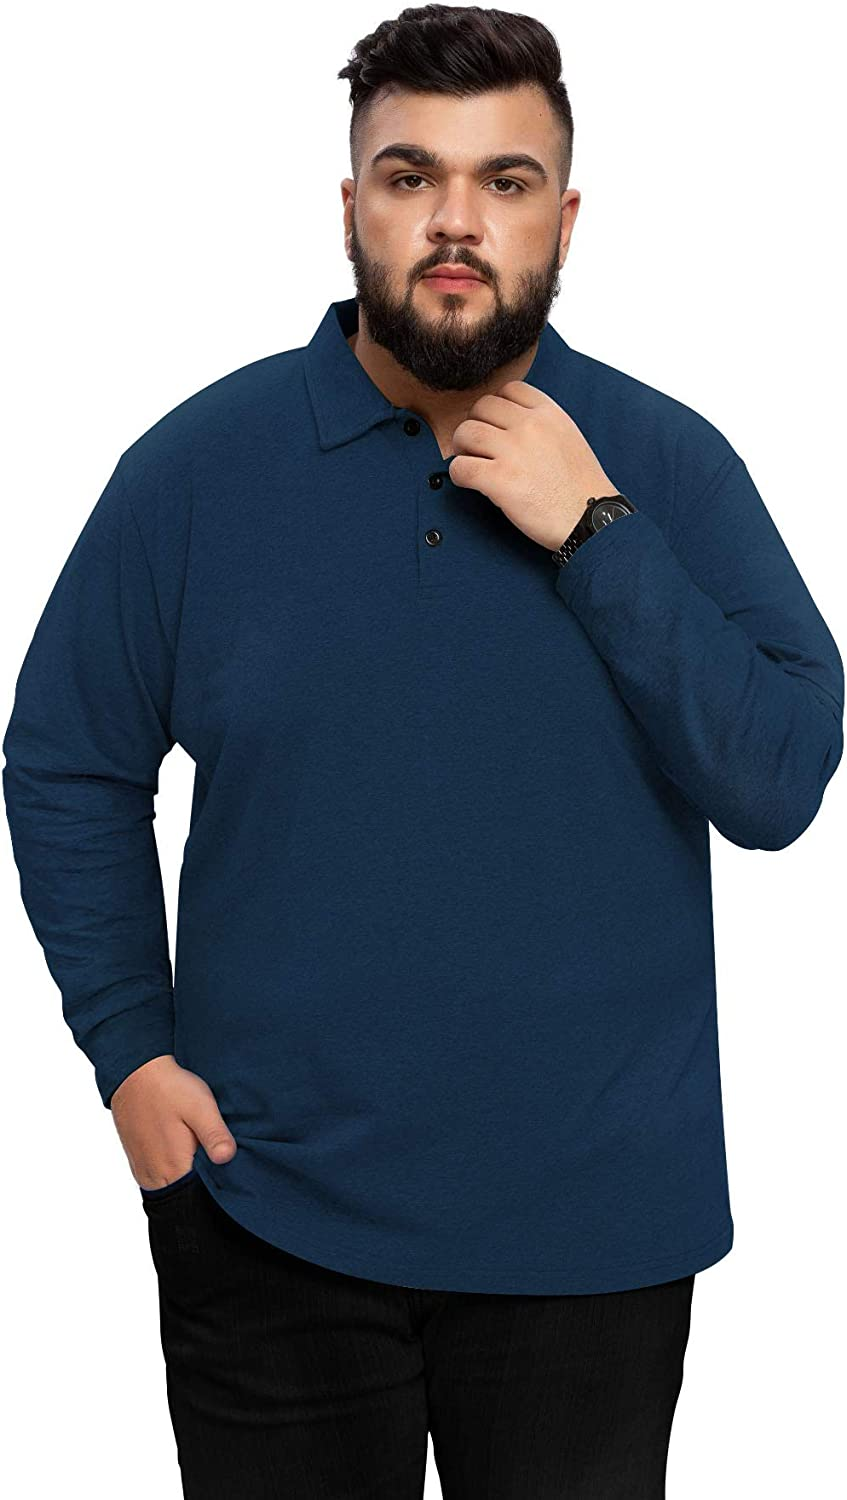 Aiyino Men's Big and Tall Classic Fit Short/Long Sleeve Solid Soft Cotton Polo Shirt